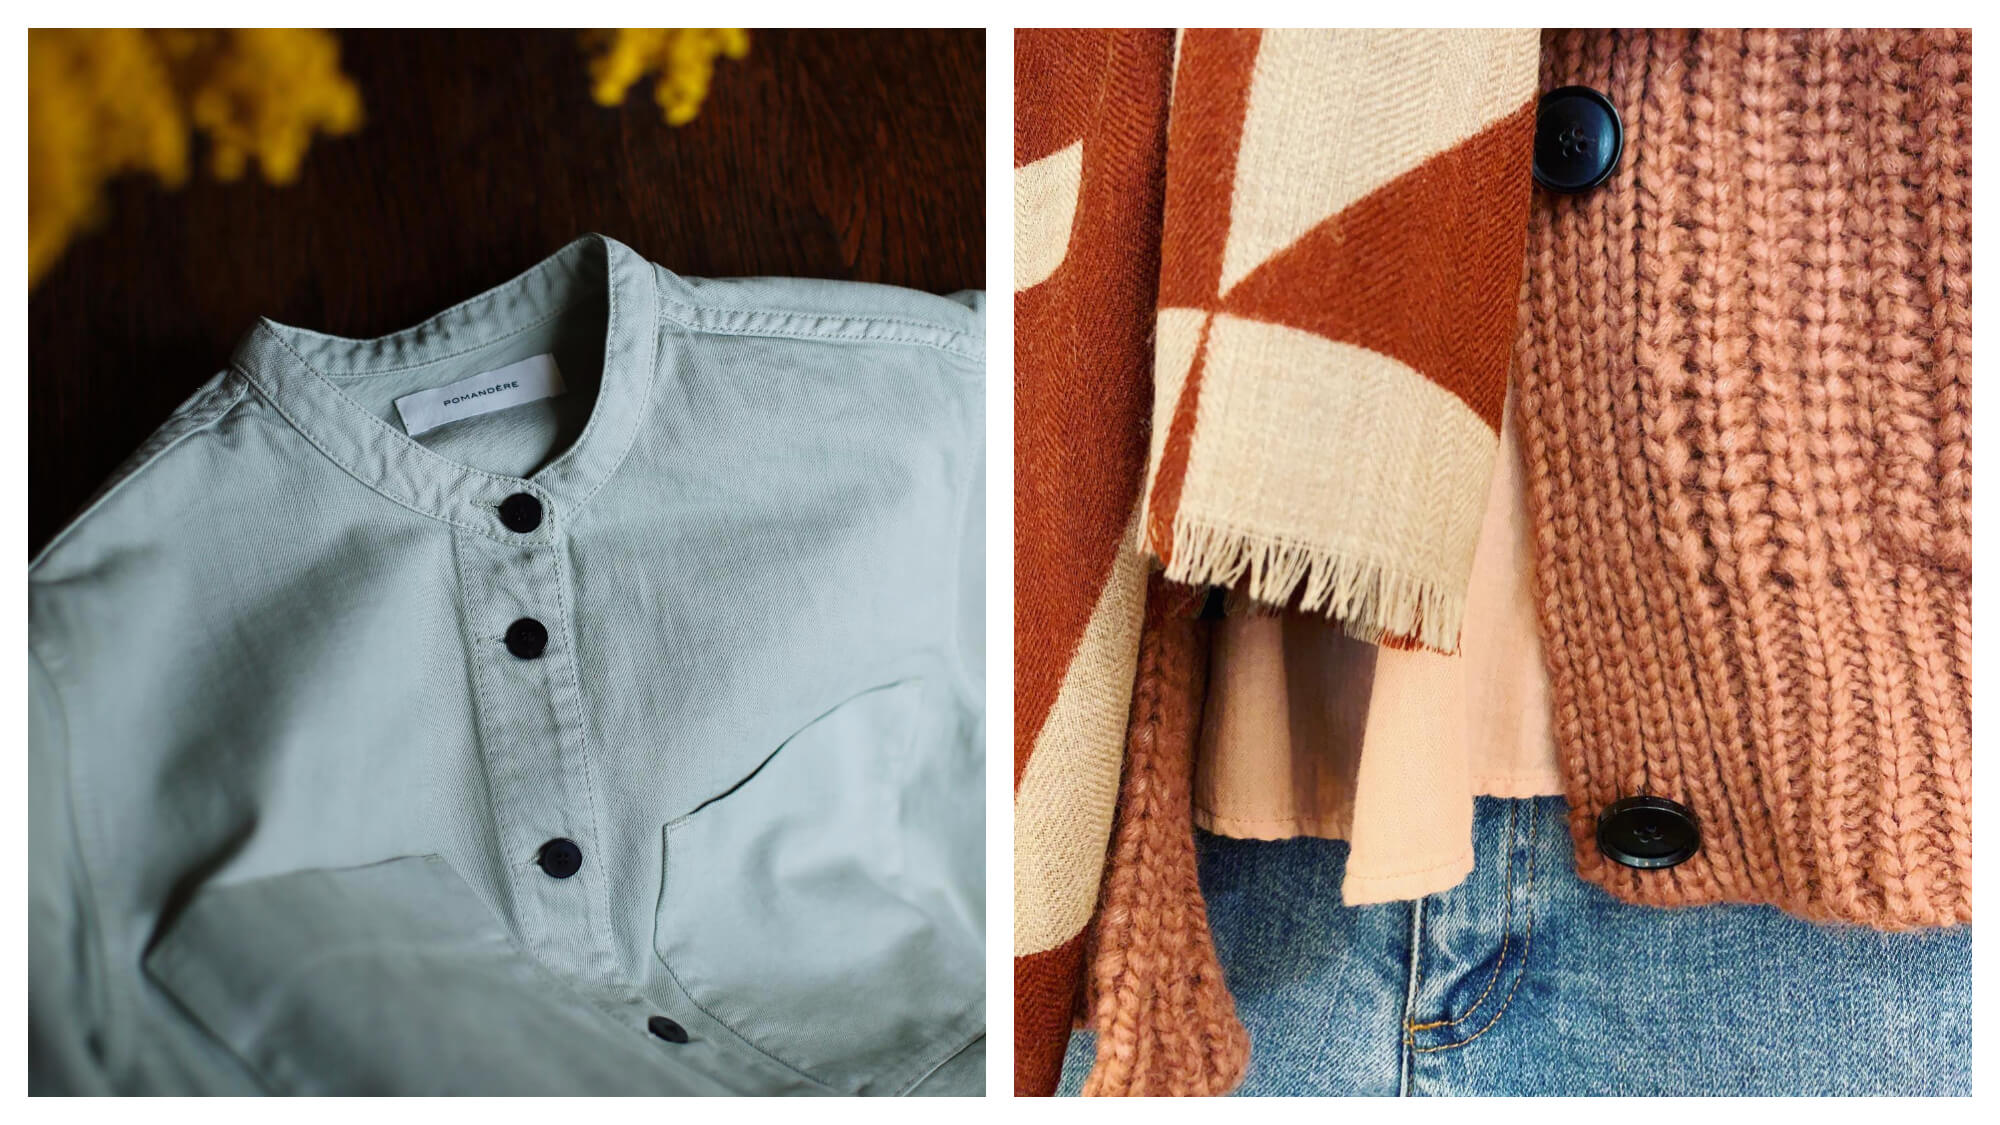 Left: a pale blue/green button-up shirt on a wood table. The buttons are black and the shirt doesn't have a colour. The label of the shirt is Pomandere. Right: a close up of a woman's outfit, she's wearing an pale orange shirt with an orange/brown knit cardigan, a cream and burnt orange scarf and jeans.